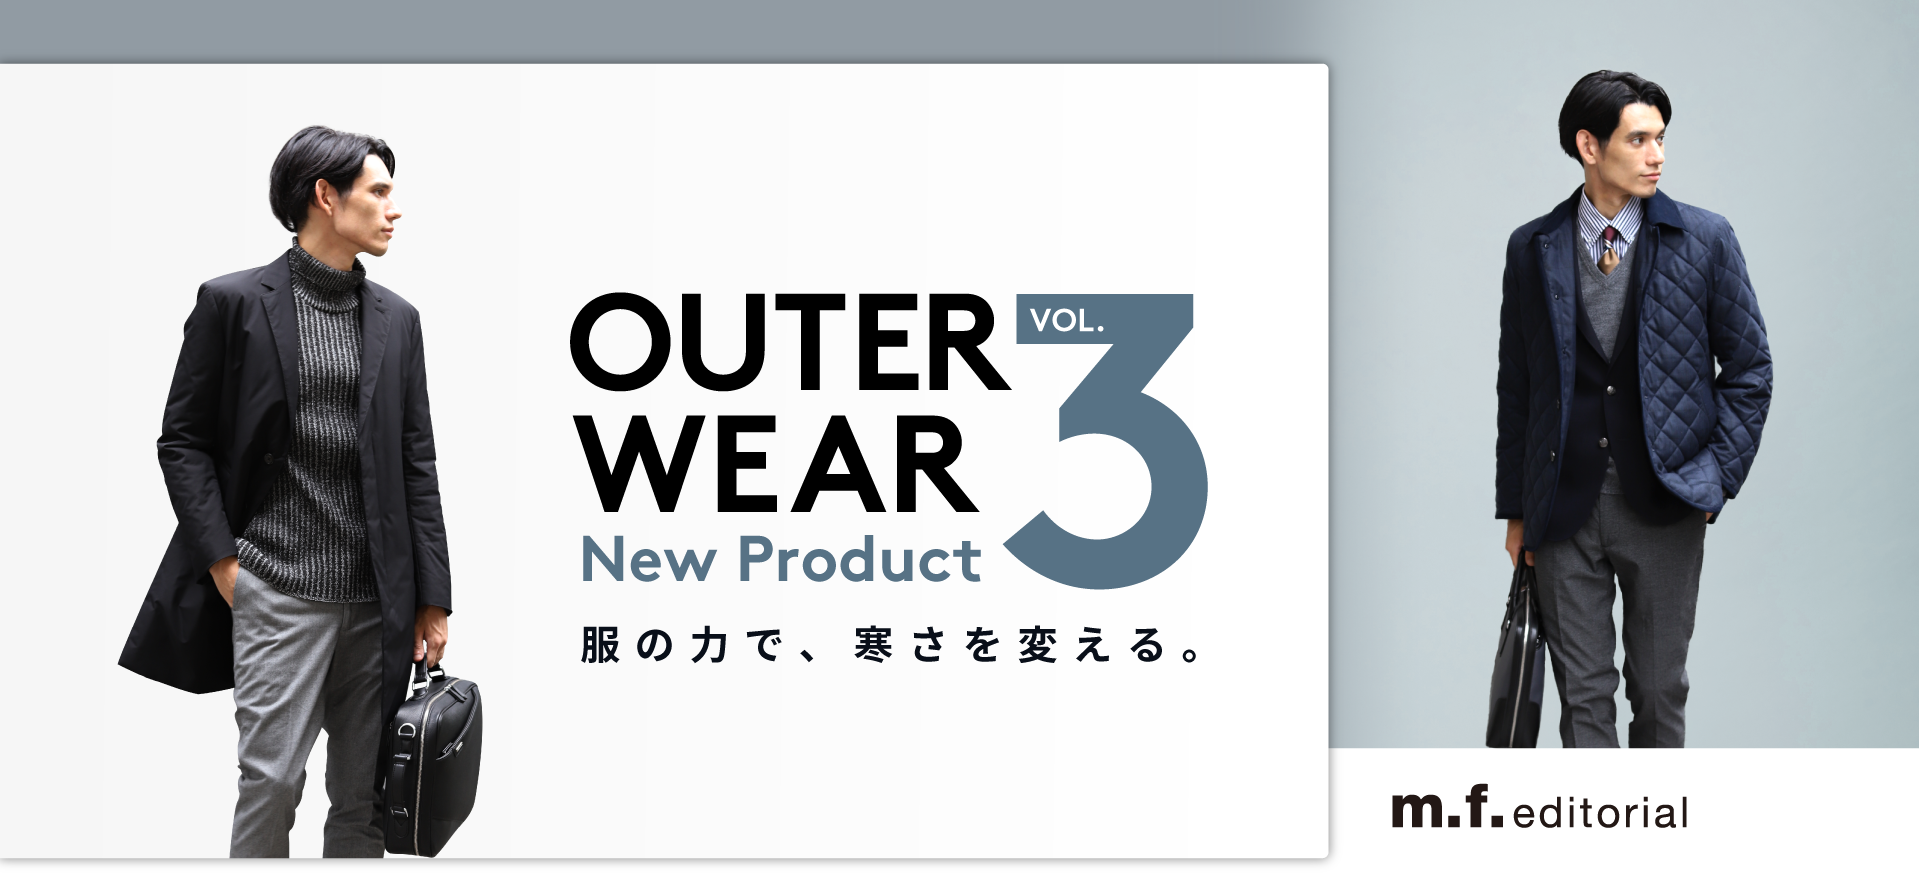 New Product Vol.3「Outer Wear」 By m.f.editorial 服の力で、寒さを変える。